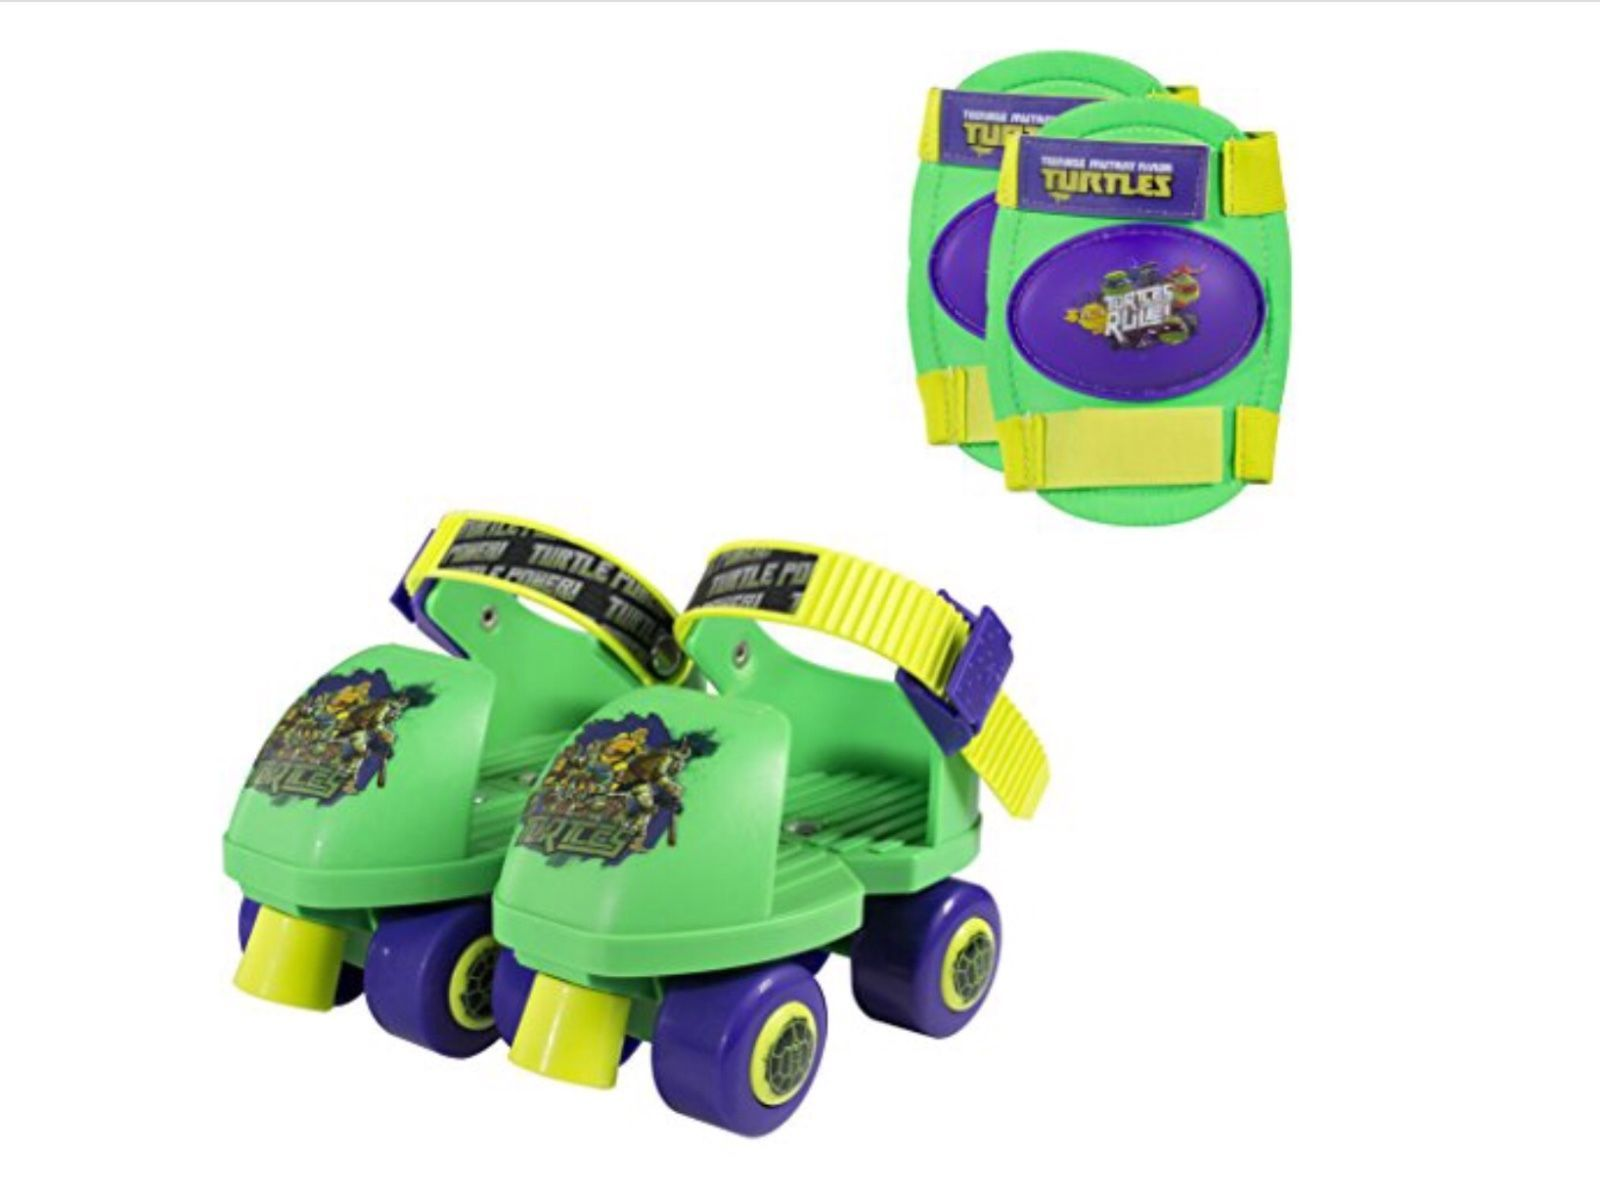 Teenage Mutant Ninja Turtles Kids Roller Skates Knee Pads Adjustable Size 6-12